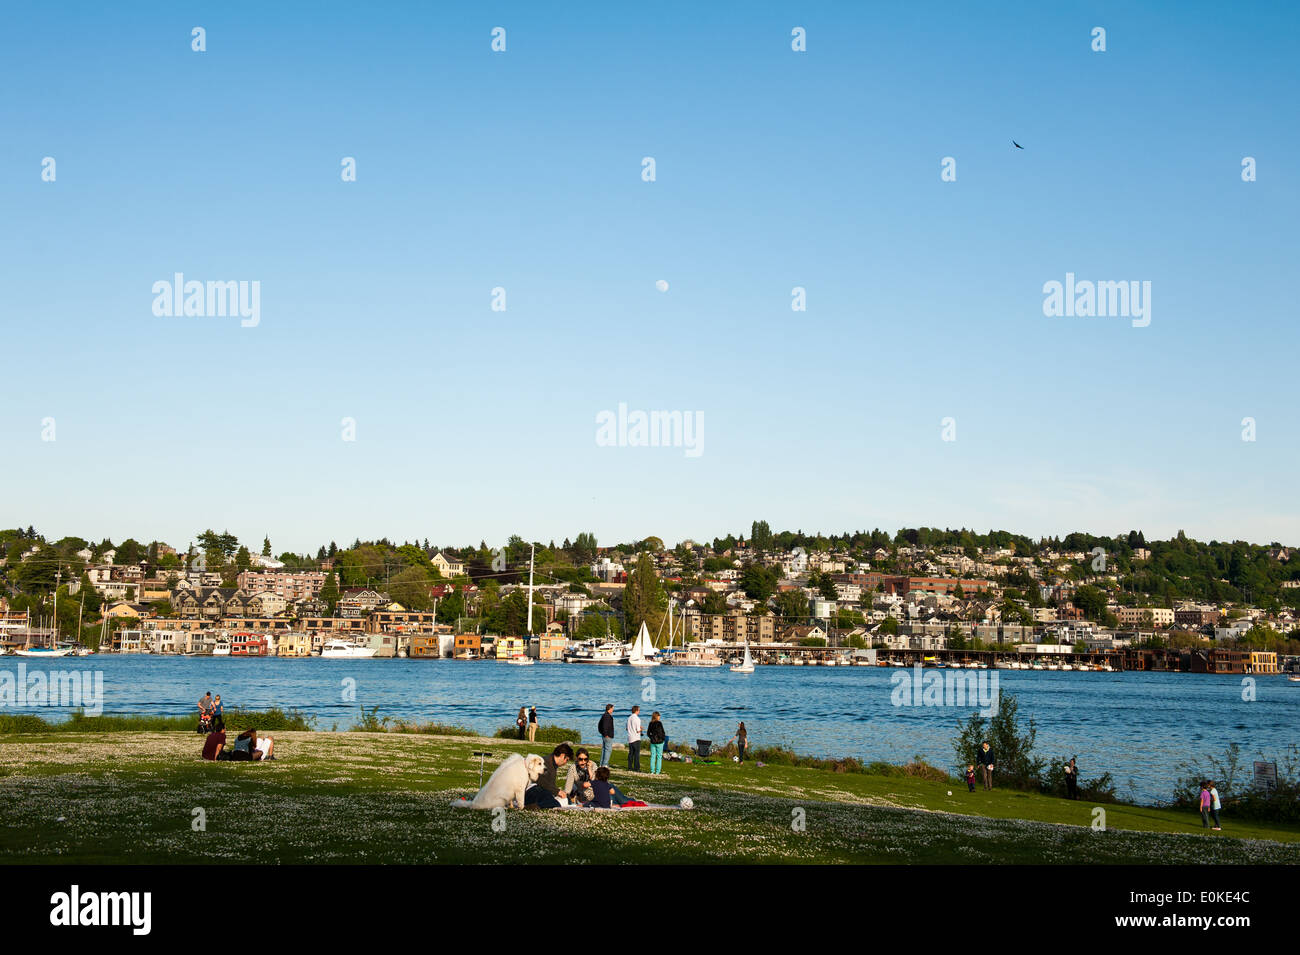 Gas Works Park overlooks Lake Union and a large portion of Seattle, including the Eastlake neighborhood. - Stock Image